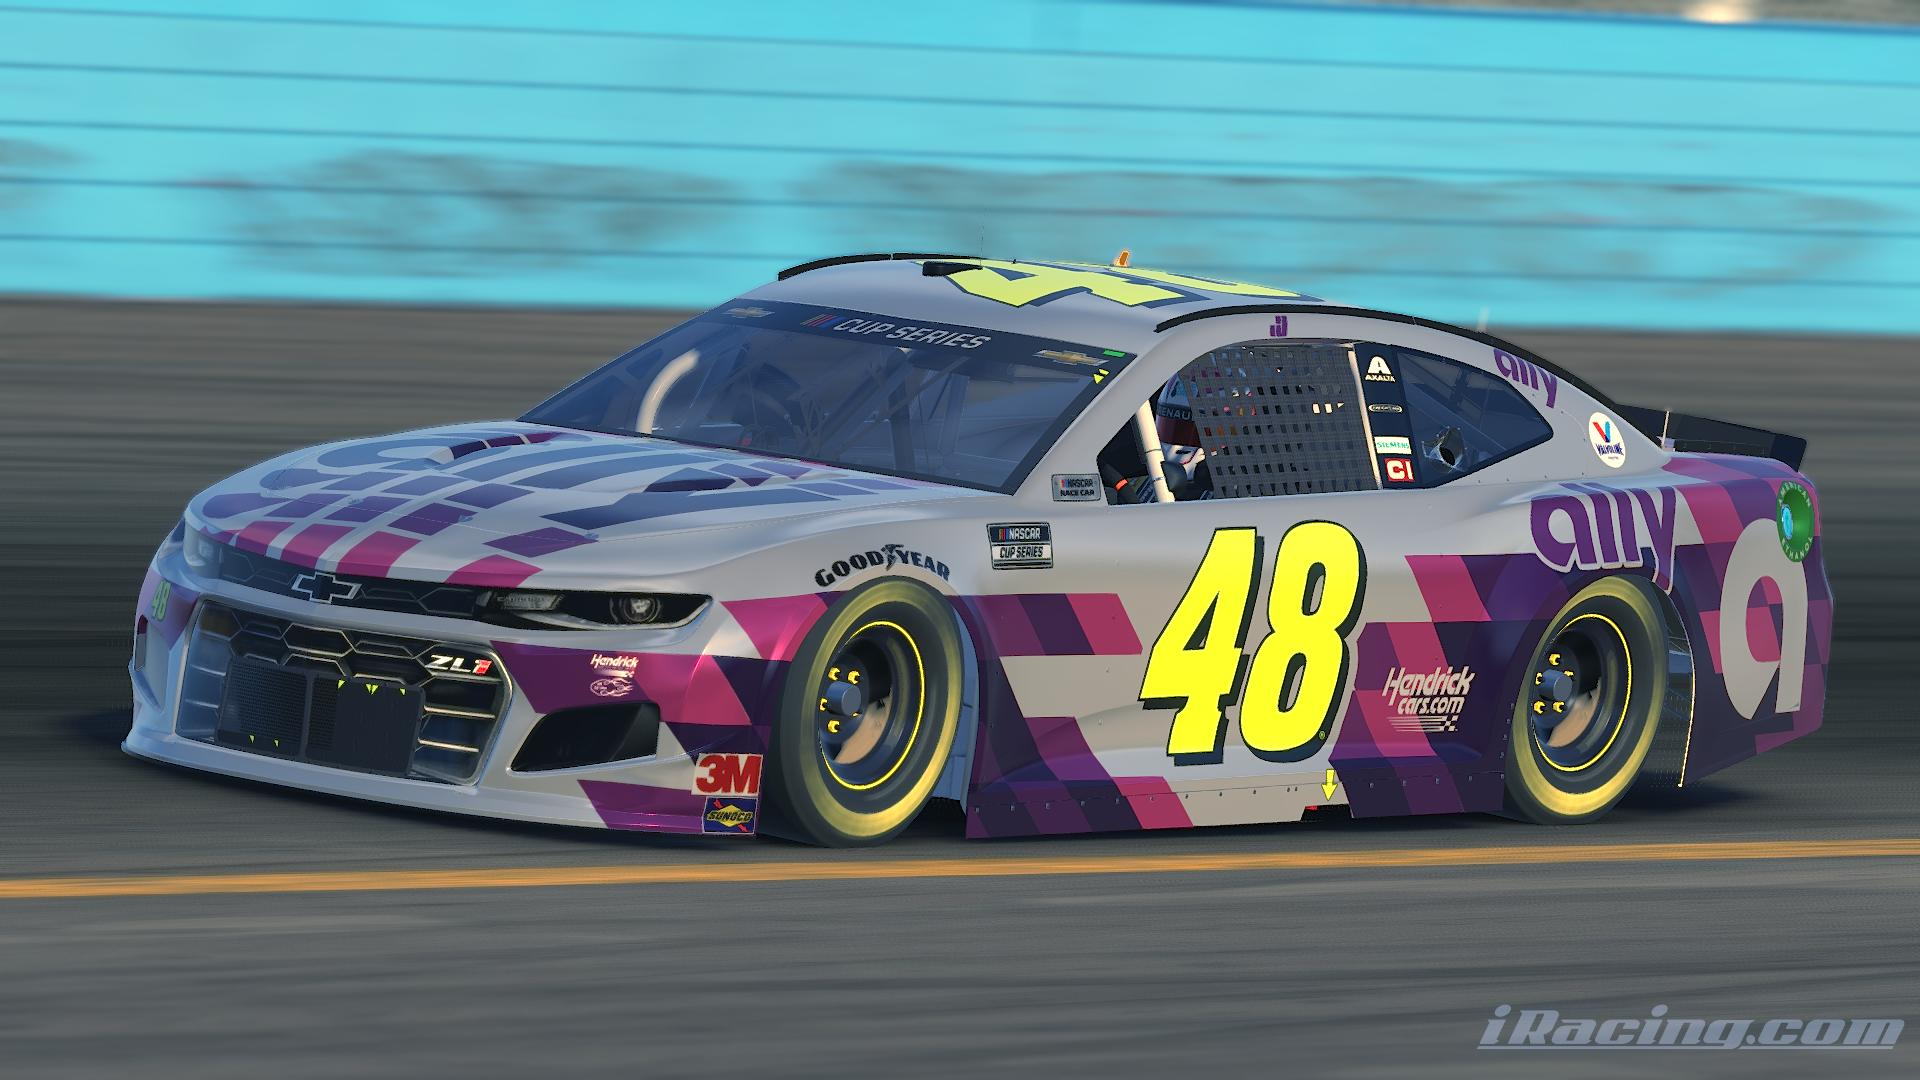 Preview of Jimmie Johnson Last Ride 2020 No Number by Alexander L Russell